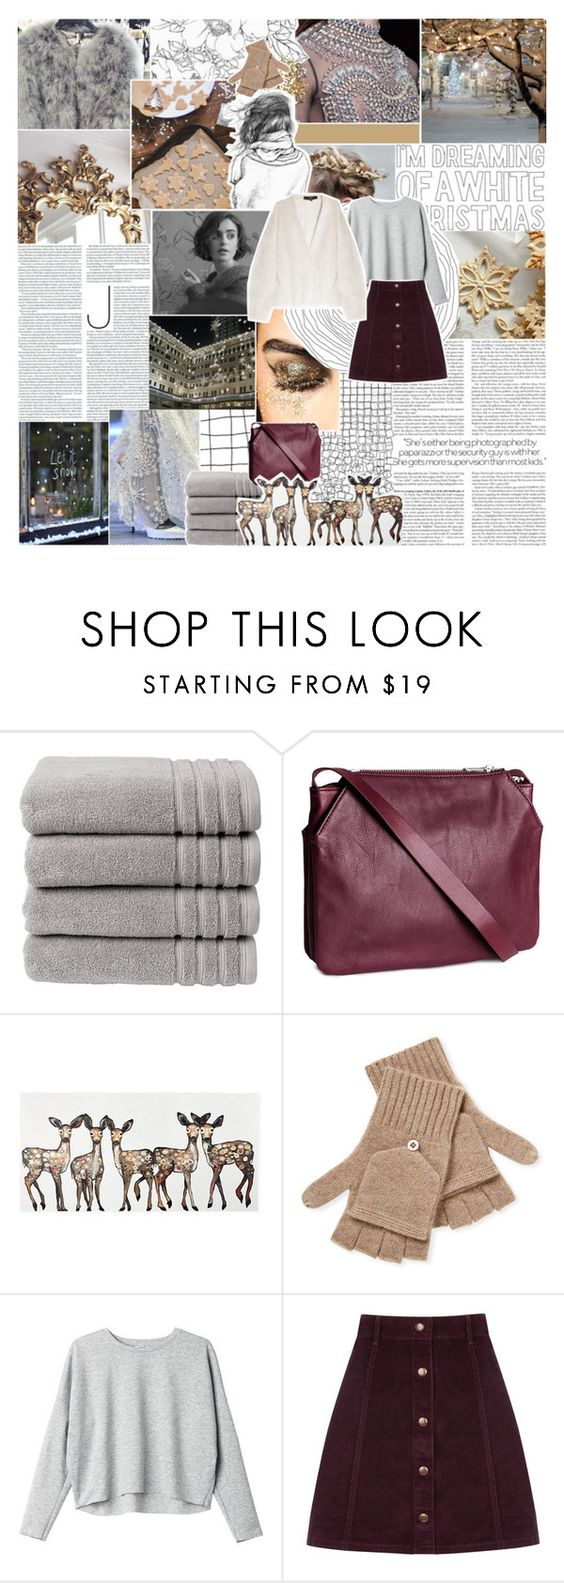 """MERRY CHRISTMAS! "" by burning-citylights ❤ liked on Polyvore featuring Prada, Christy, H&M, Qi Cashmere, Monki, Oasis, Versus, TIBI and magazinesets"